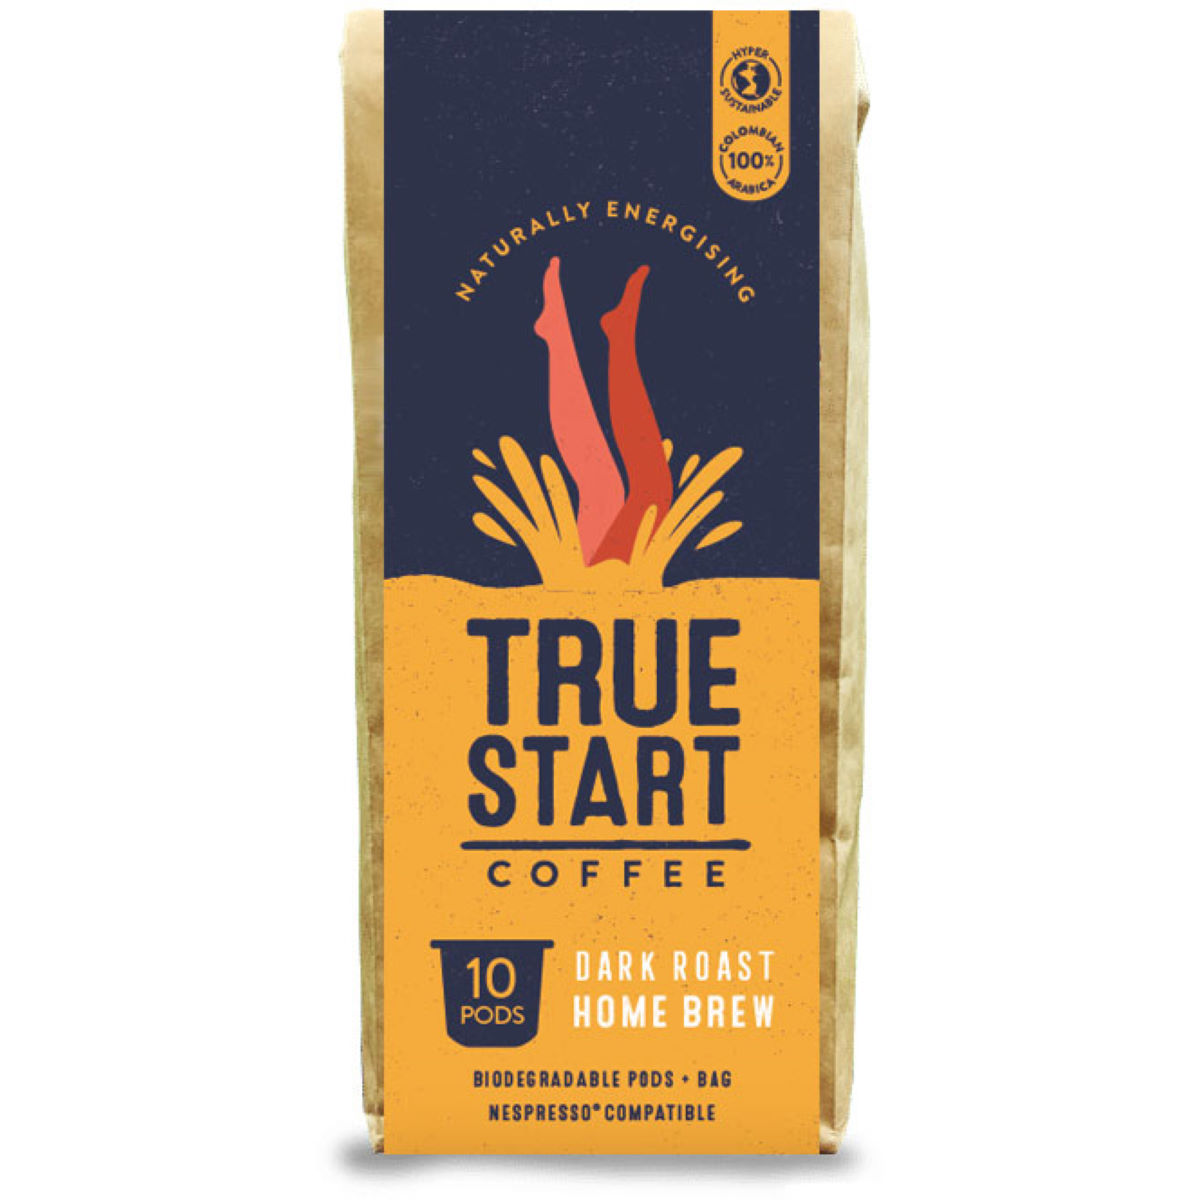 TrueStart TrueStart Home Brew Coffee - Biodegradable Dark Ro - Café